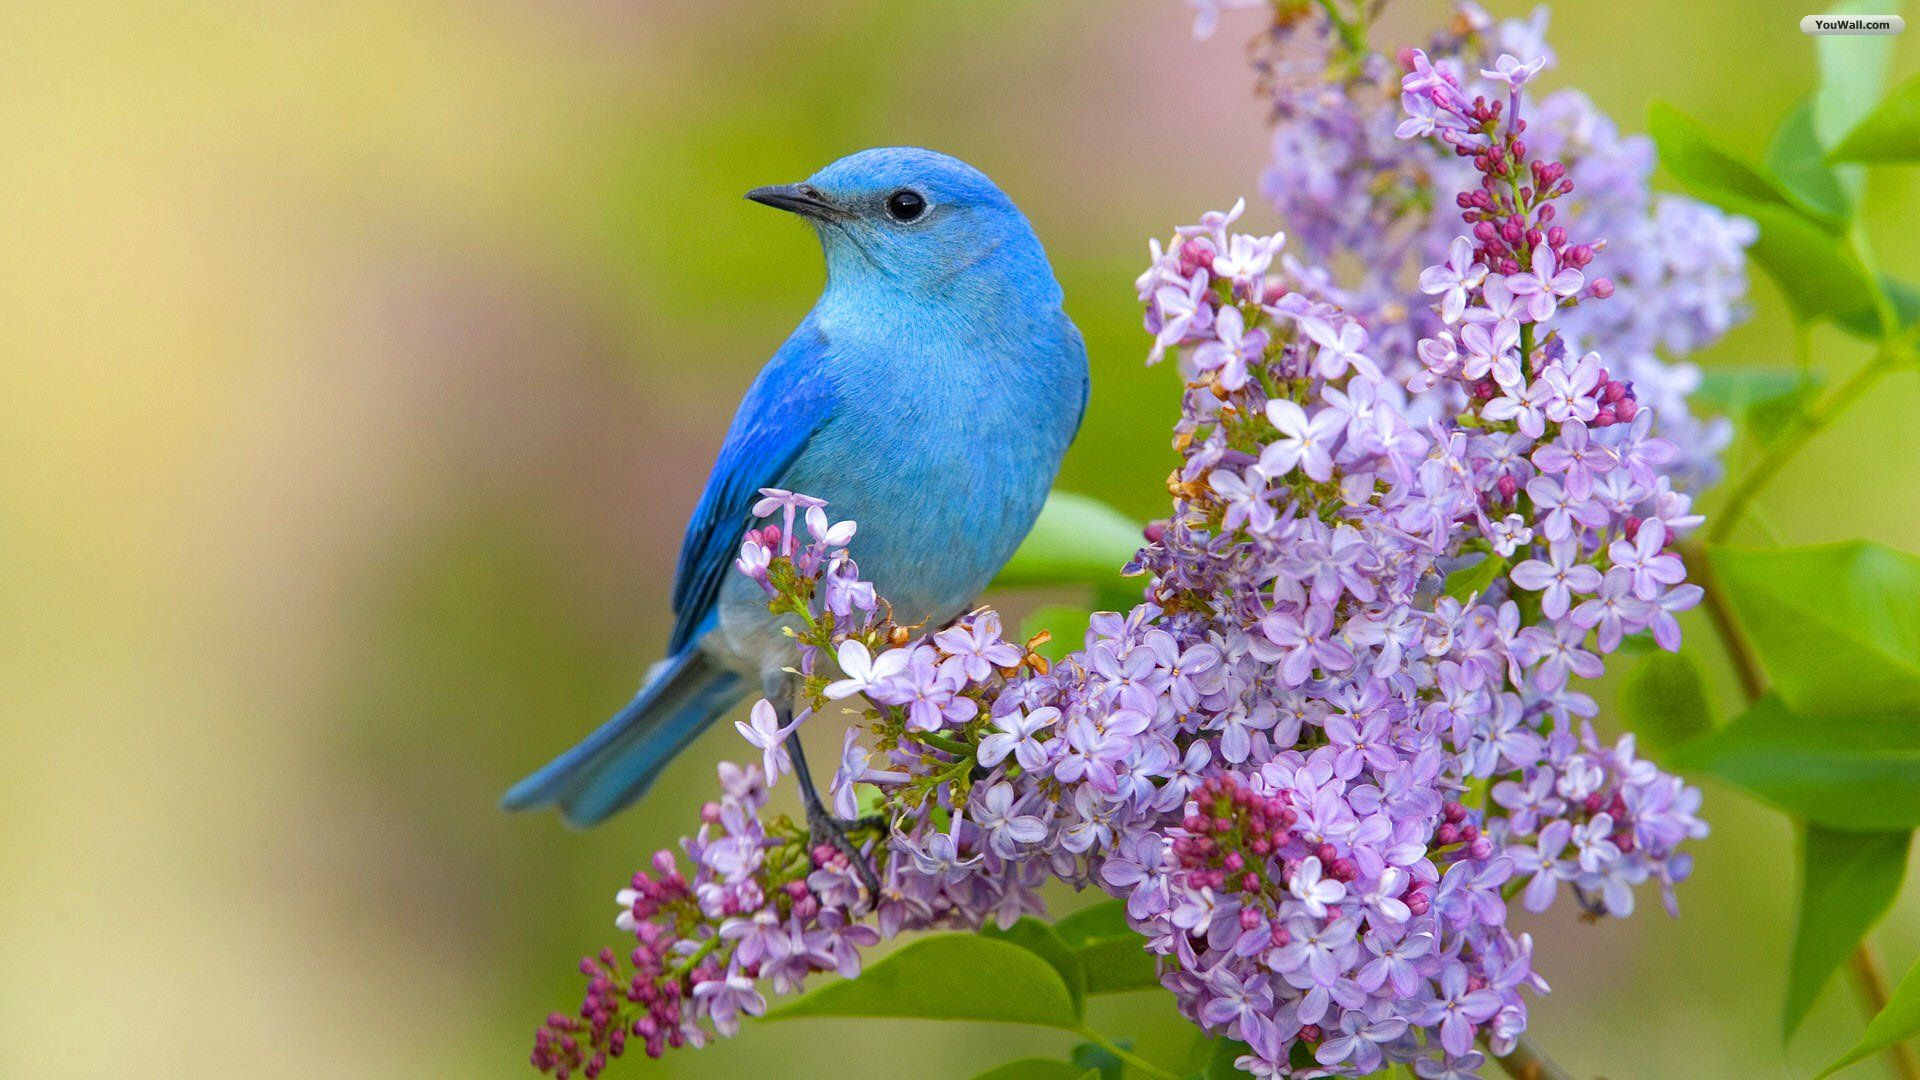 Bird Wallpaper Alluring Blue Bird Wallpaper  Birds  Pinterest  Wallpaper And Wallpaper Review